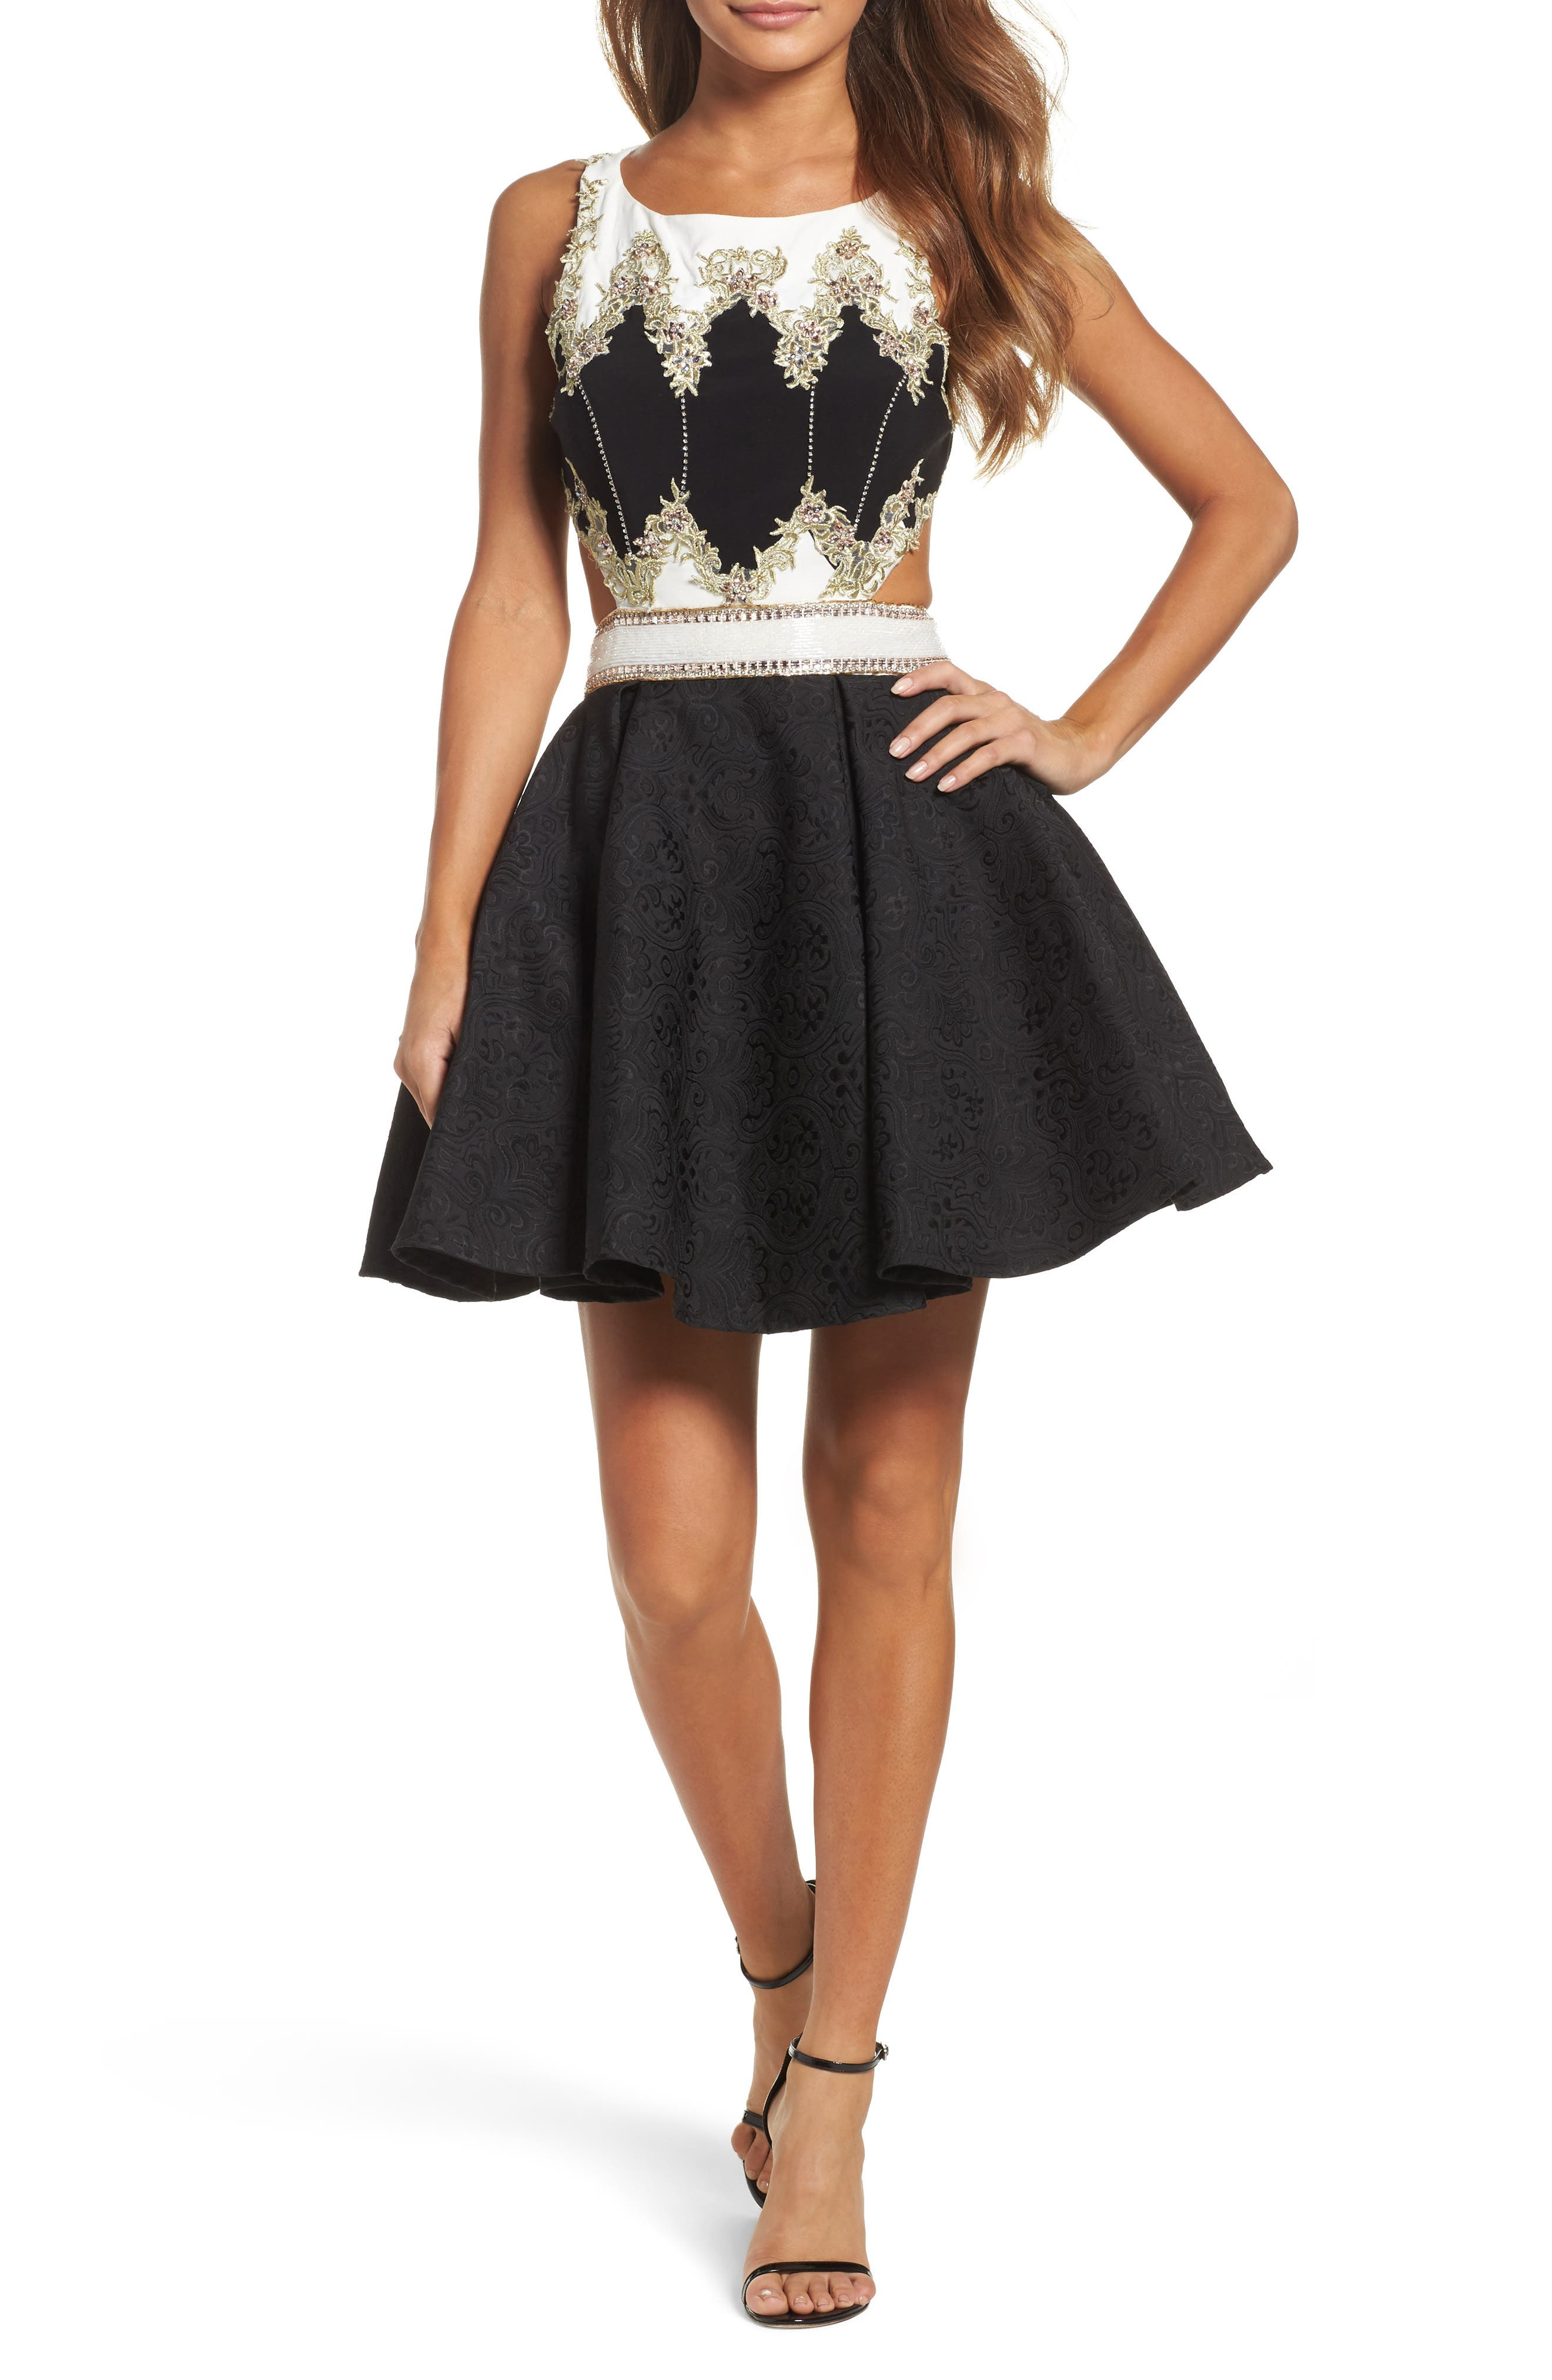 Embellished Cutout Back Cocktail Dress,                             Main thumbnail 1, color,                             001